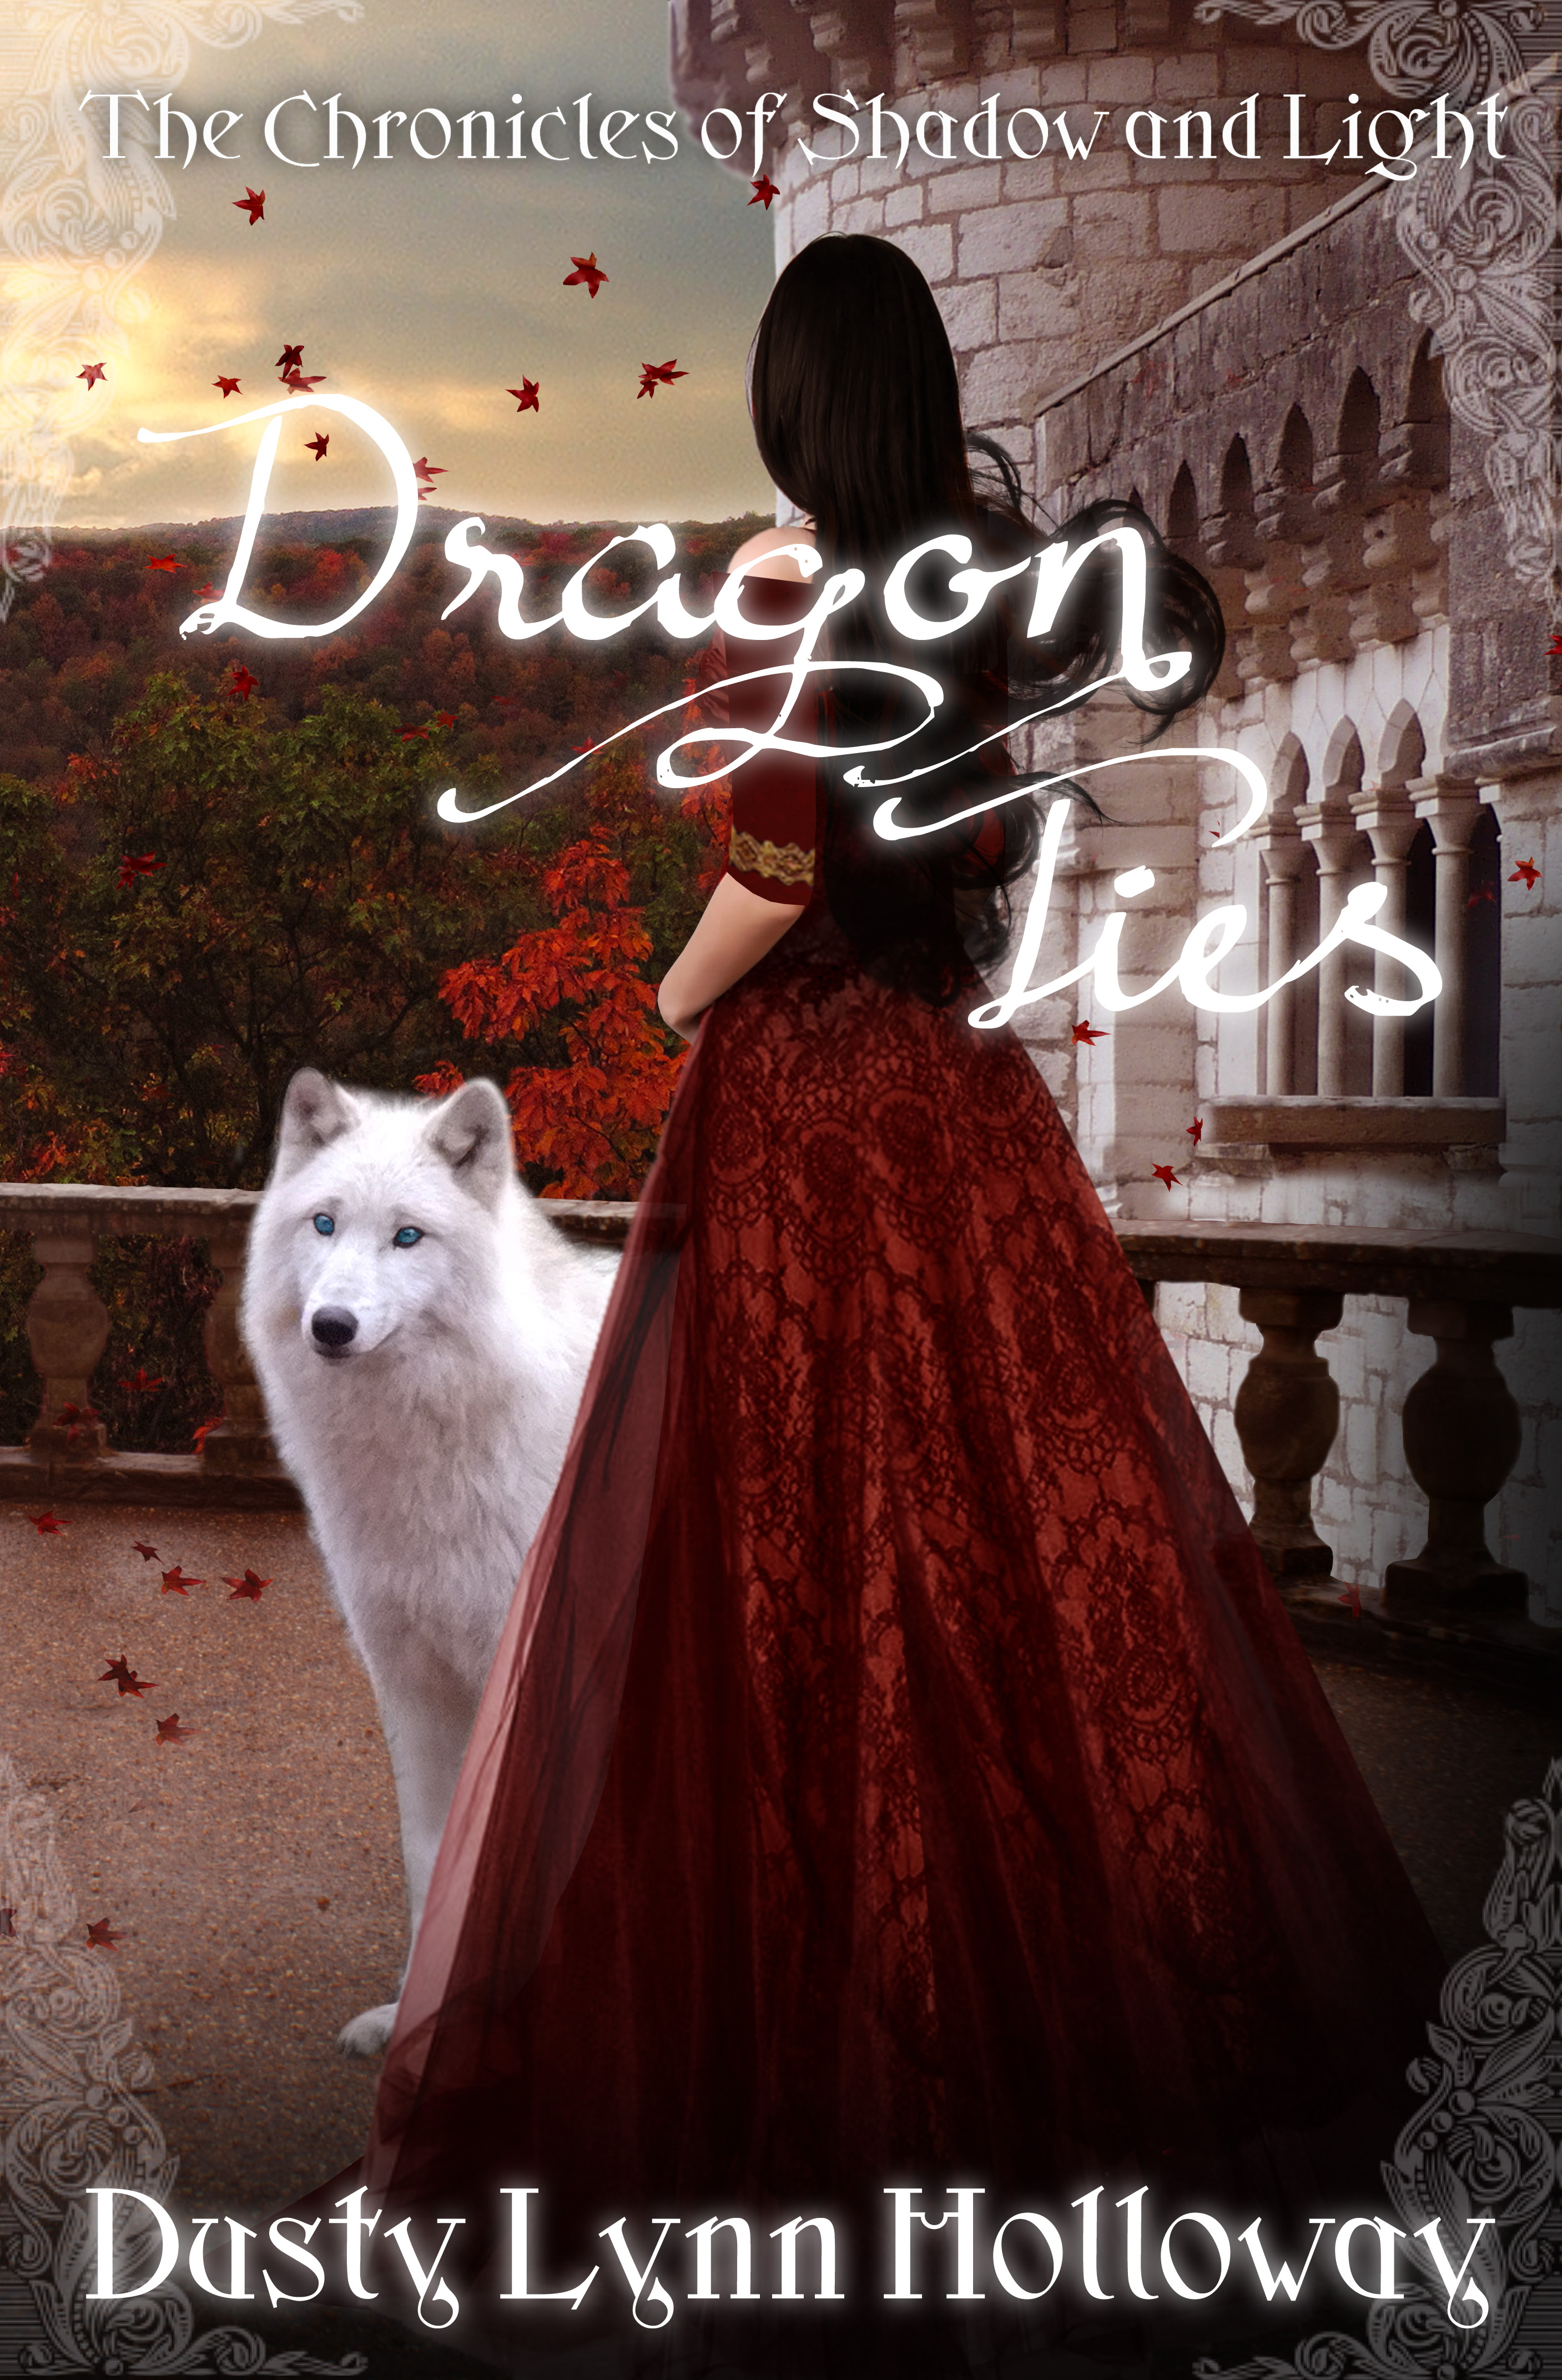 Dragon Ties (The Chronicles of Shadow and Light) Book 2, an Ebook by Dusty  Lynn Holloway